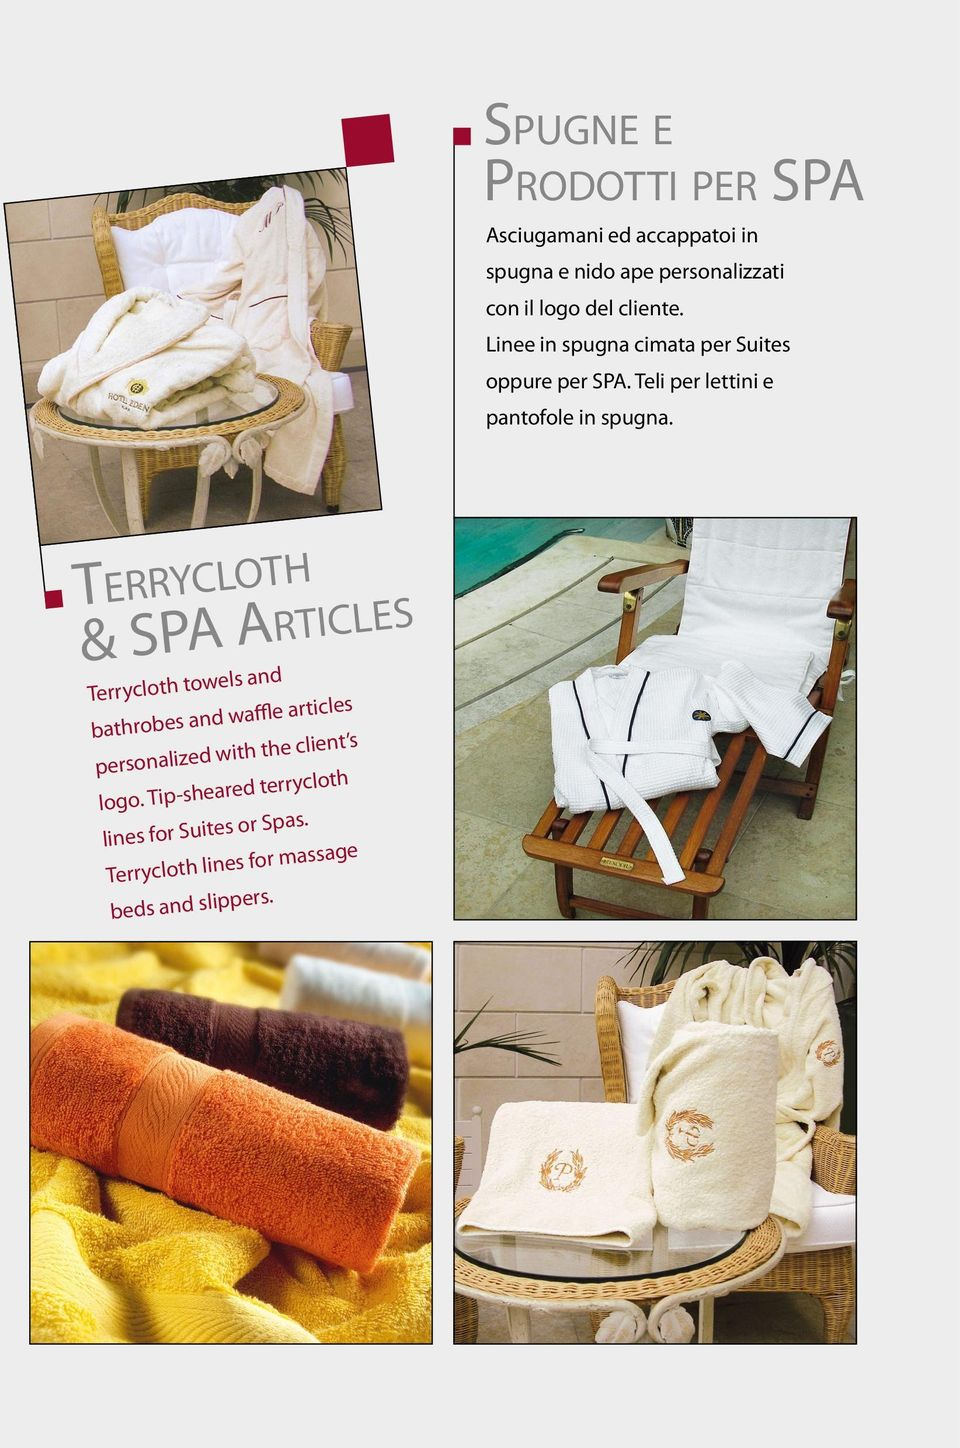 Terrycloth & SPA Articles Terrycloth towels and bathrobes and waffle articles personalized with the